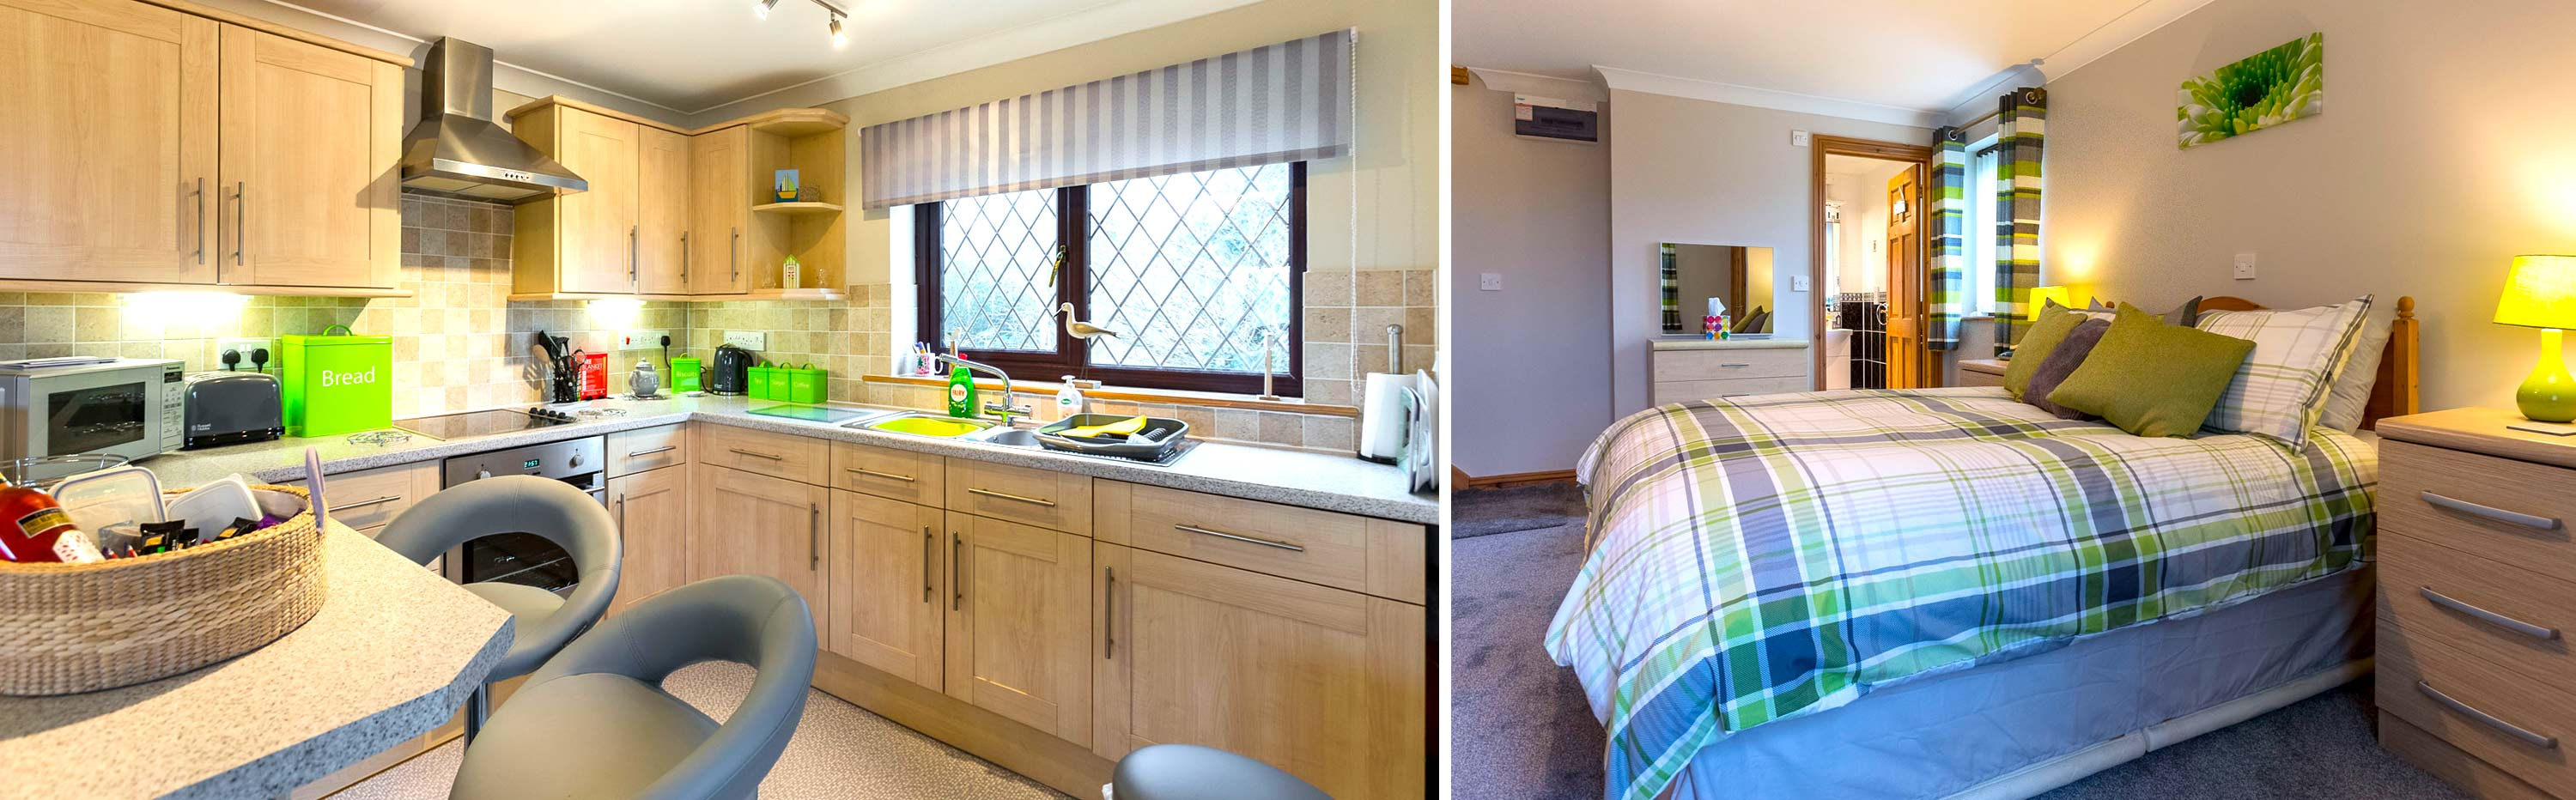 Self Catering at Meadowview Bude, Cornwall